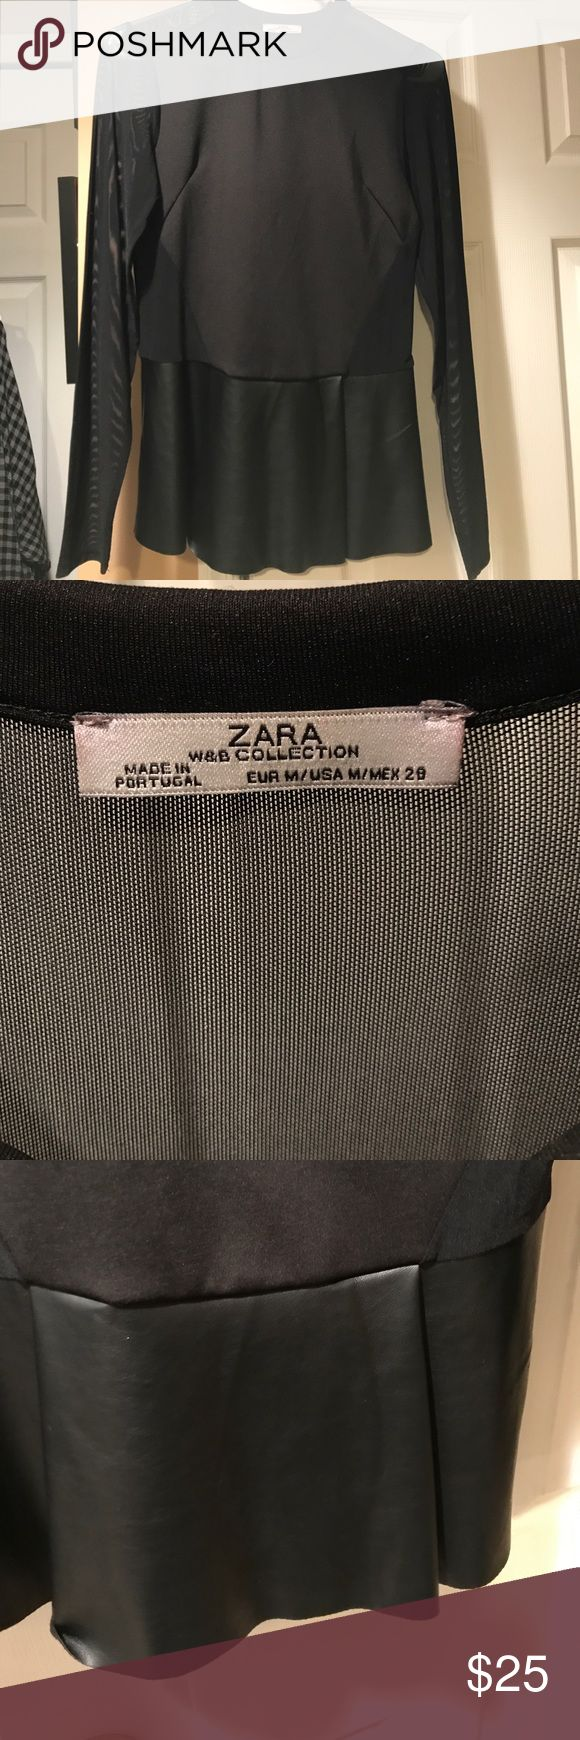 Zara leather peplum top Black sheer sleeved, leather peplum leather on the bottom of the shirt Zara Tops Blouses